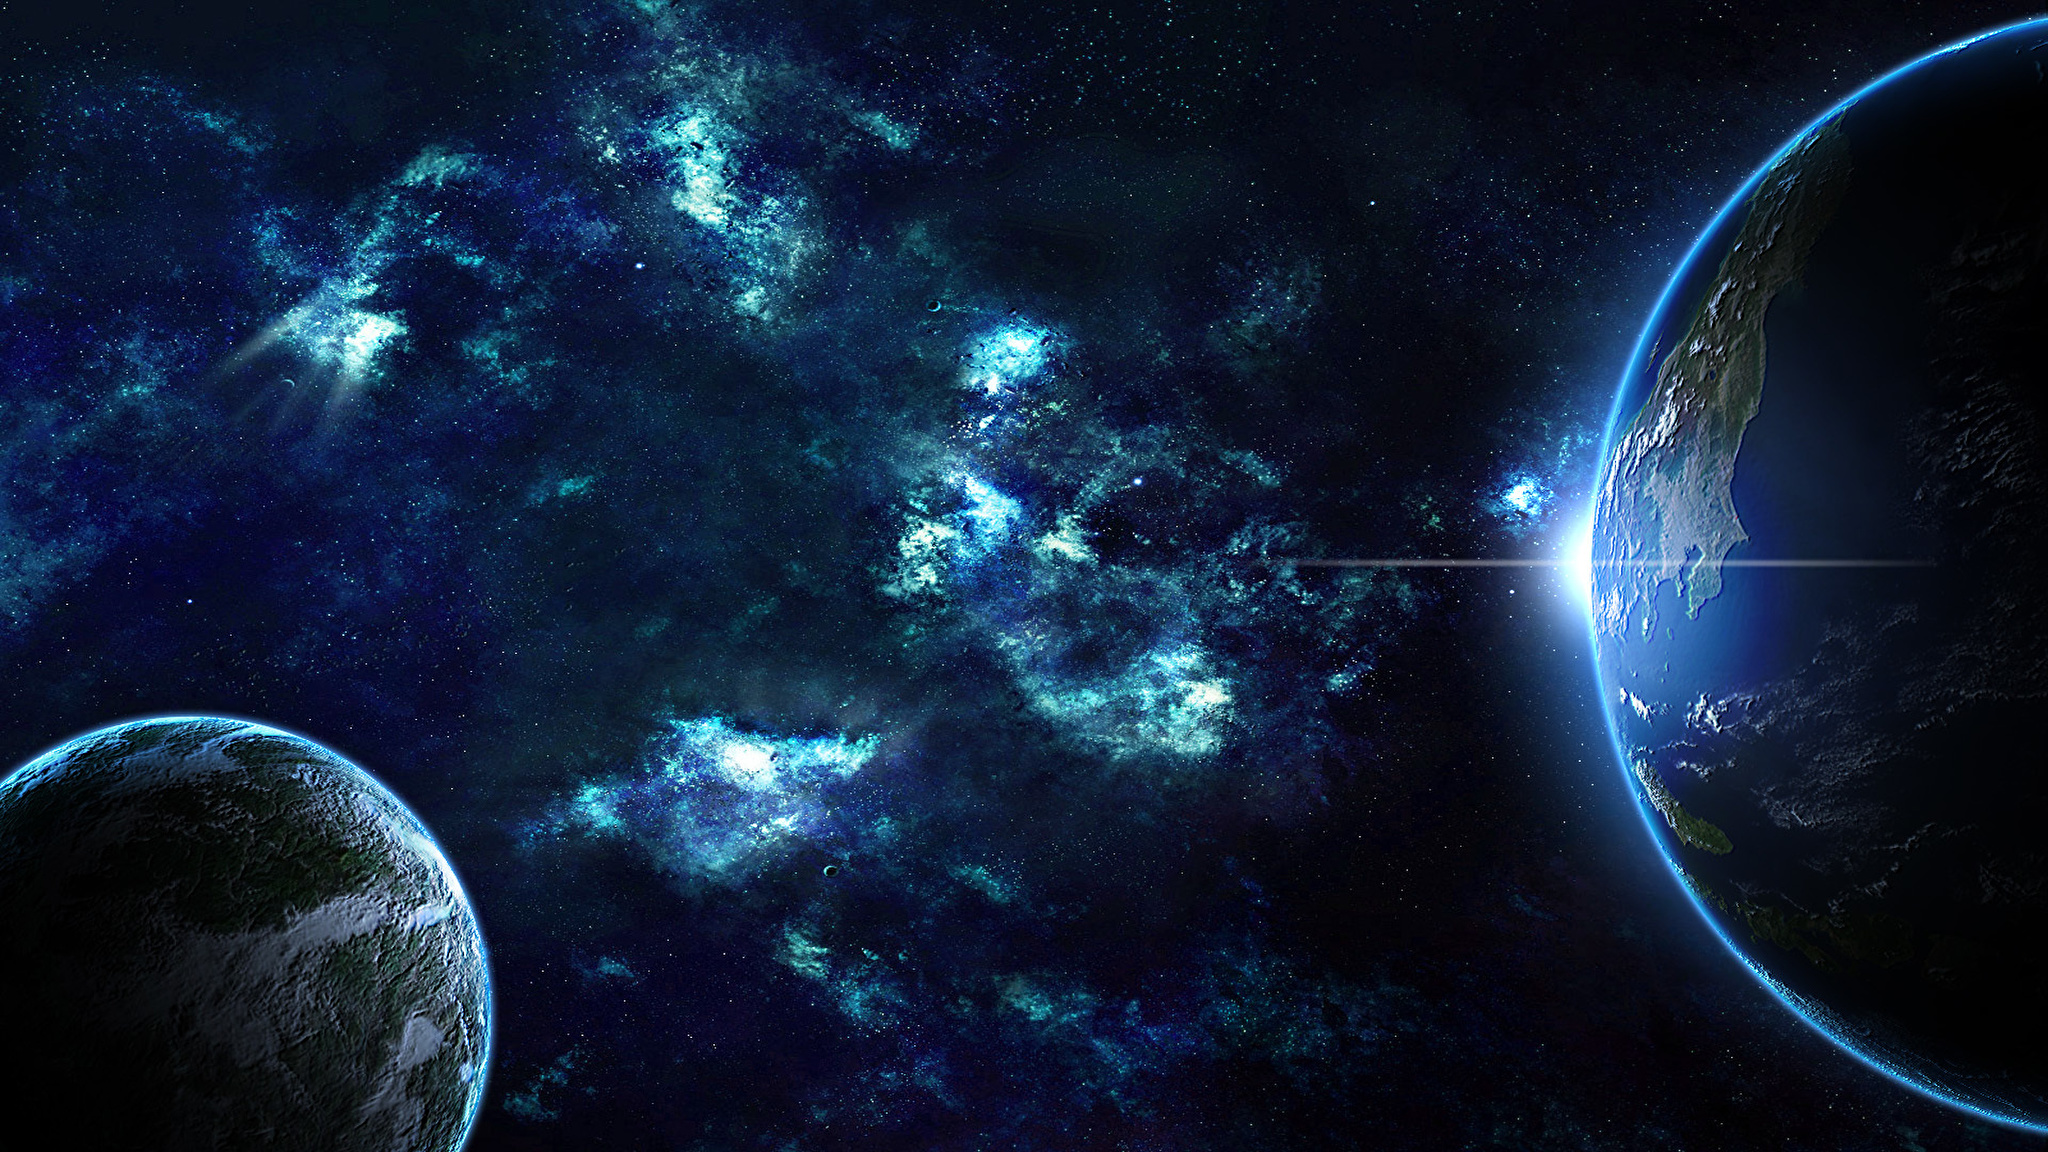 planets and stars - HD1920×1080